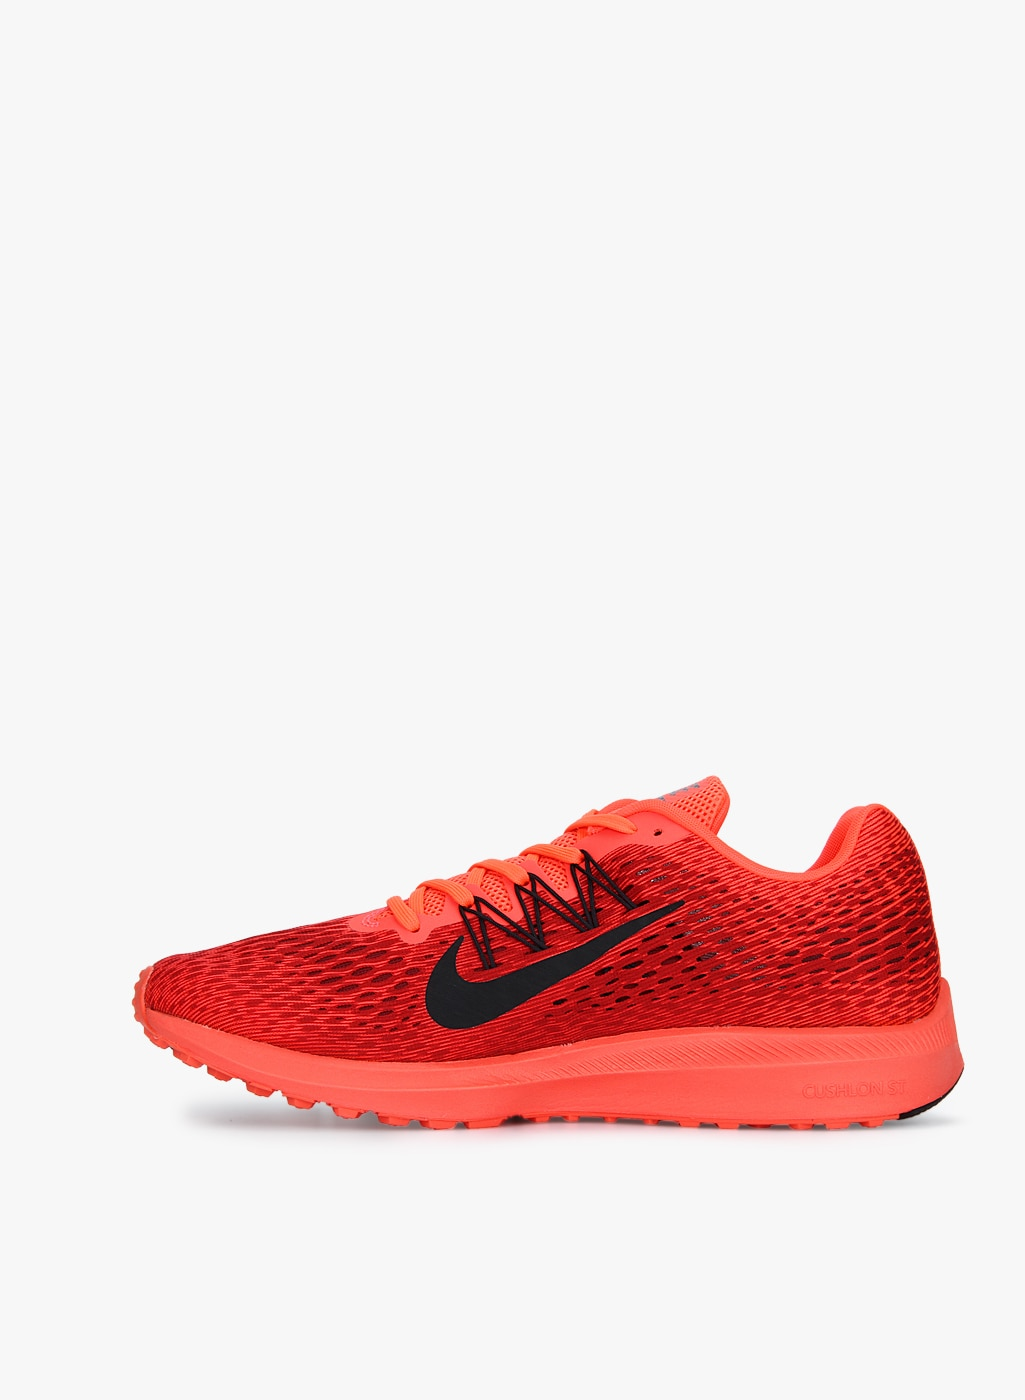 aec79234d47 Nike Air Zoom Winflo 5 Red Running Shoes